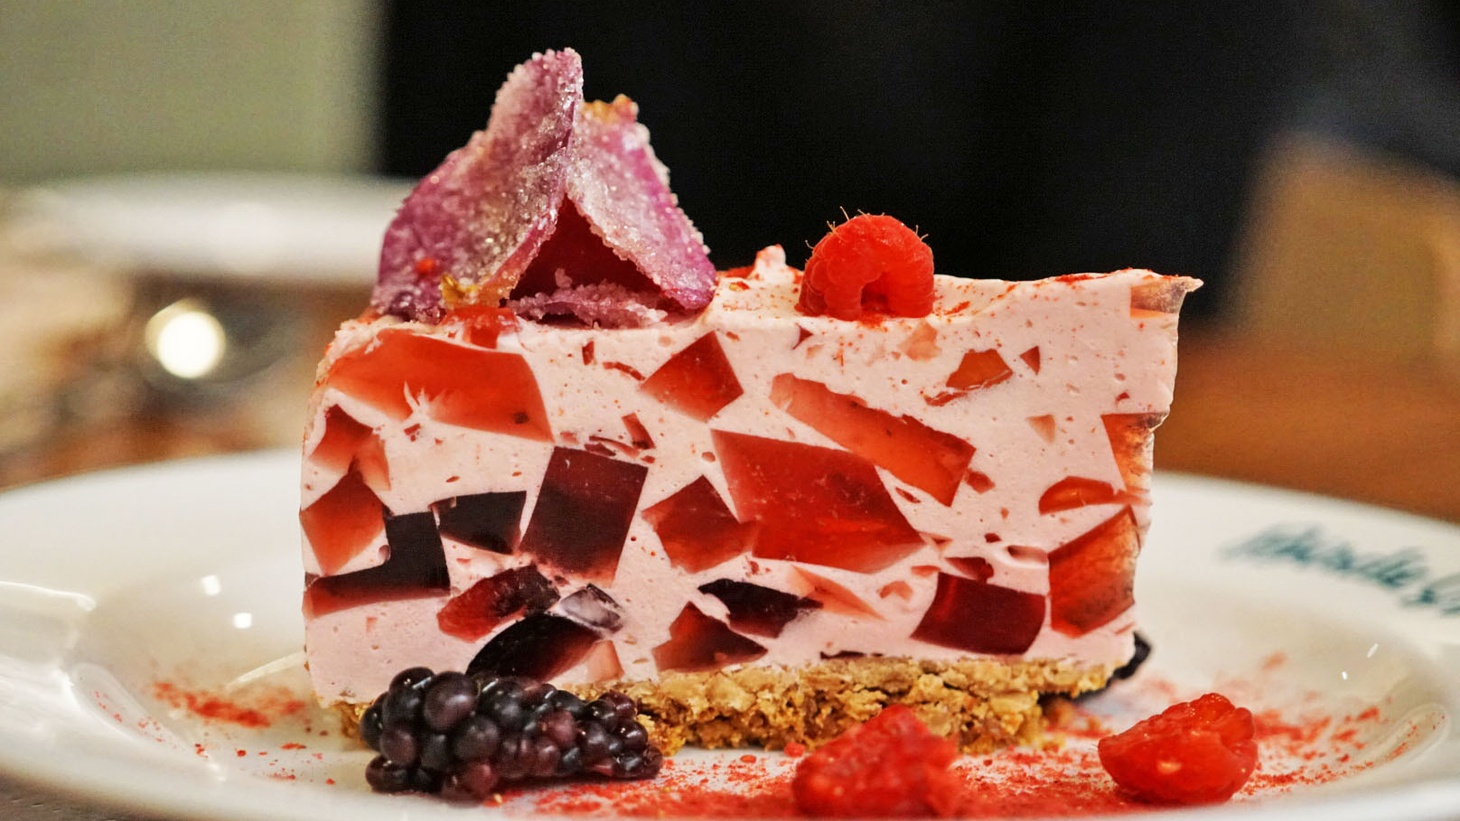 Rose Petal Pie from Birdie G's, a Santa Monica restaurant that will be participating in the online bake sale.